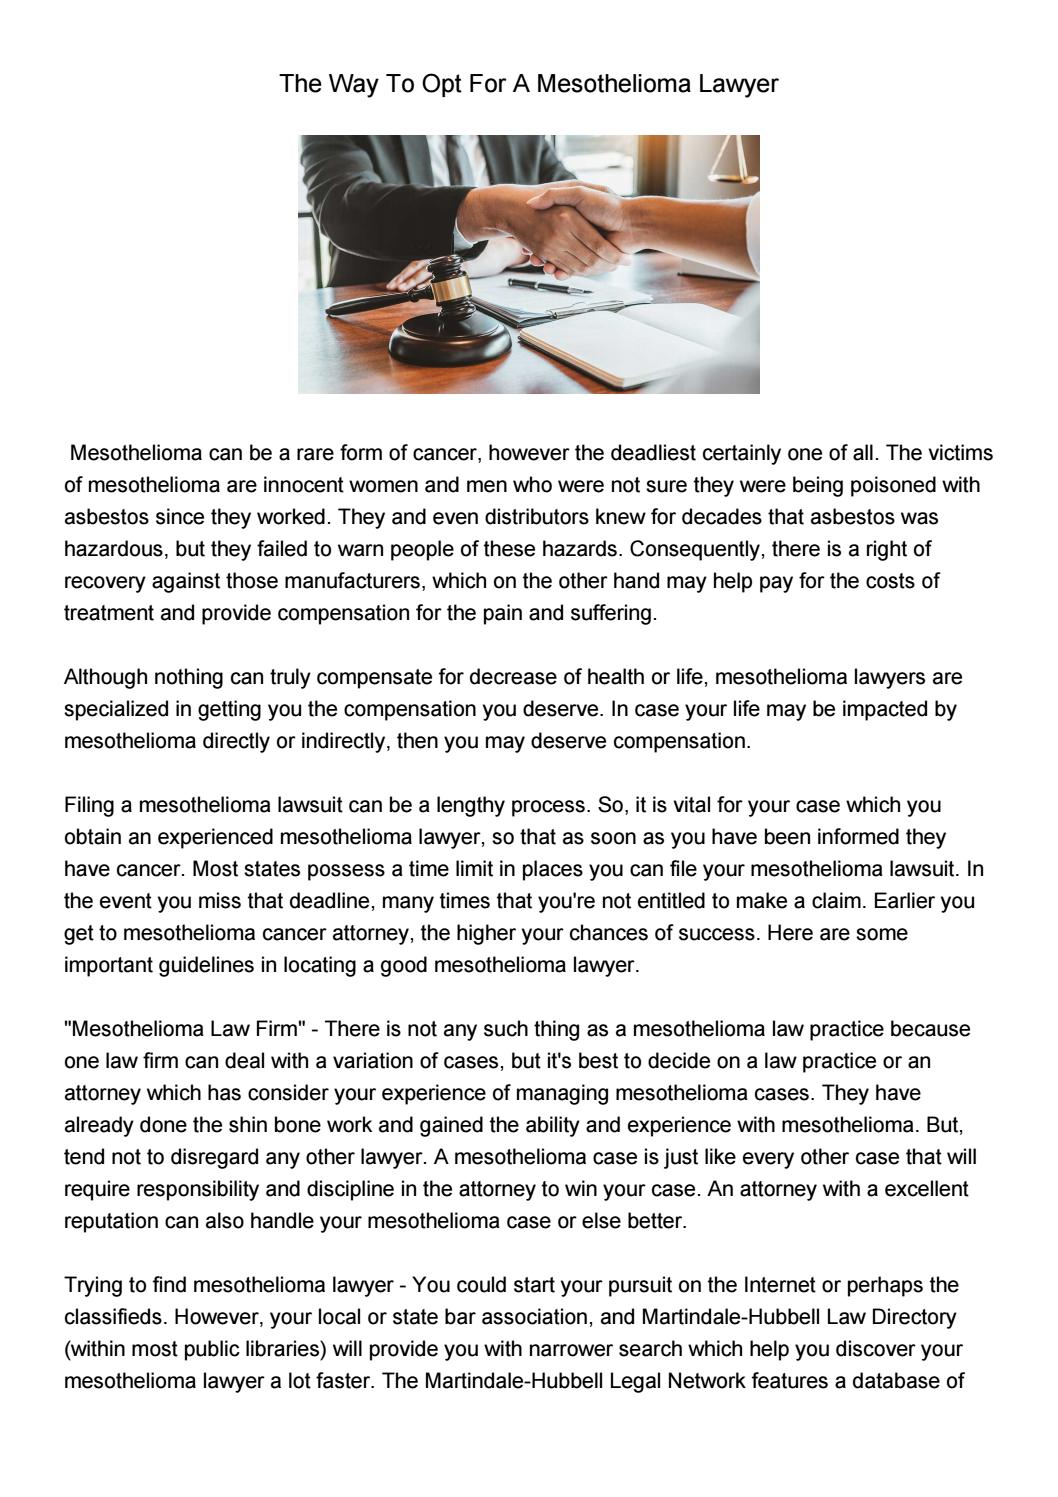 The Way To Opt For A Mesothelioma Lawyer By Debra Issuu